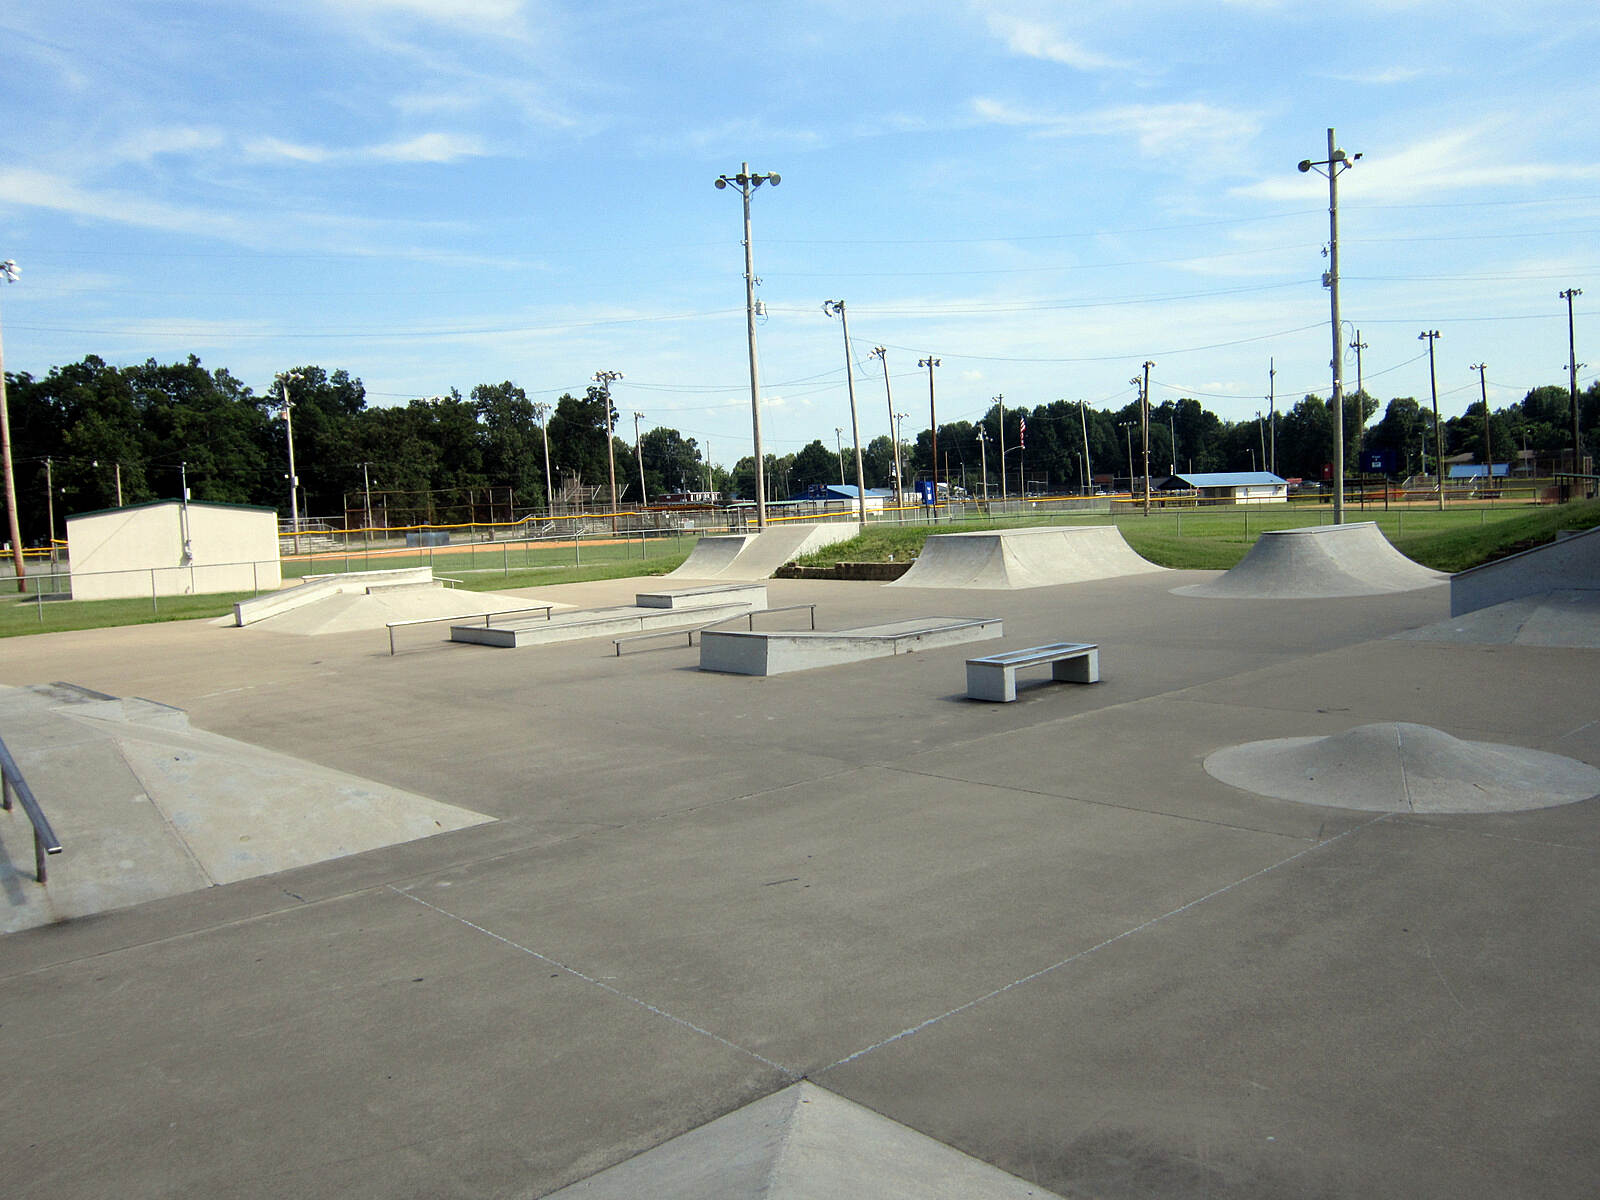 Paducah Greenway  Skate Park Where the Greenway Trail skirts beside Bob Noble Park (an excellent place to park your vehicle) there is a skate park, well worth checking out.